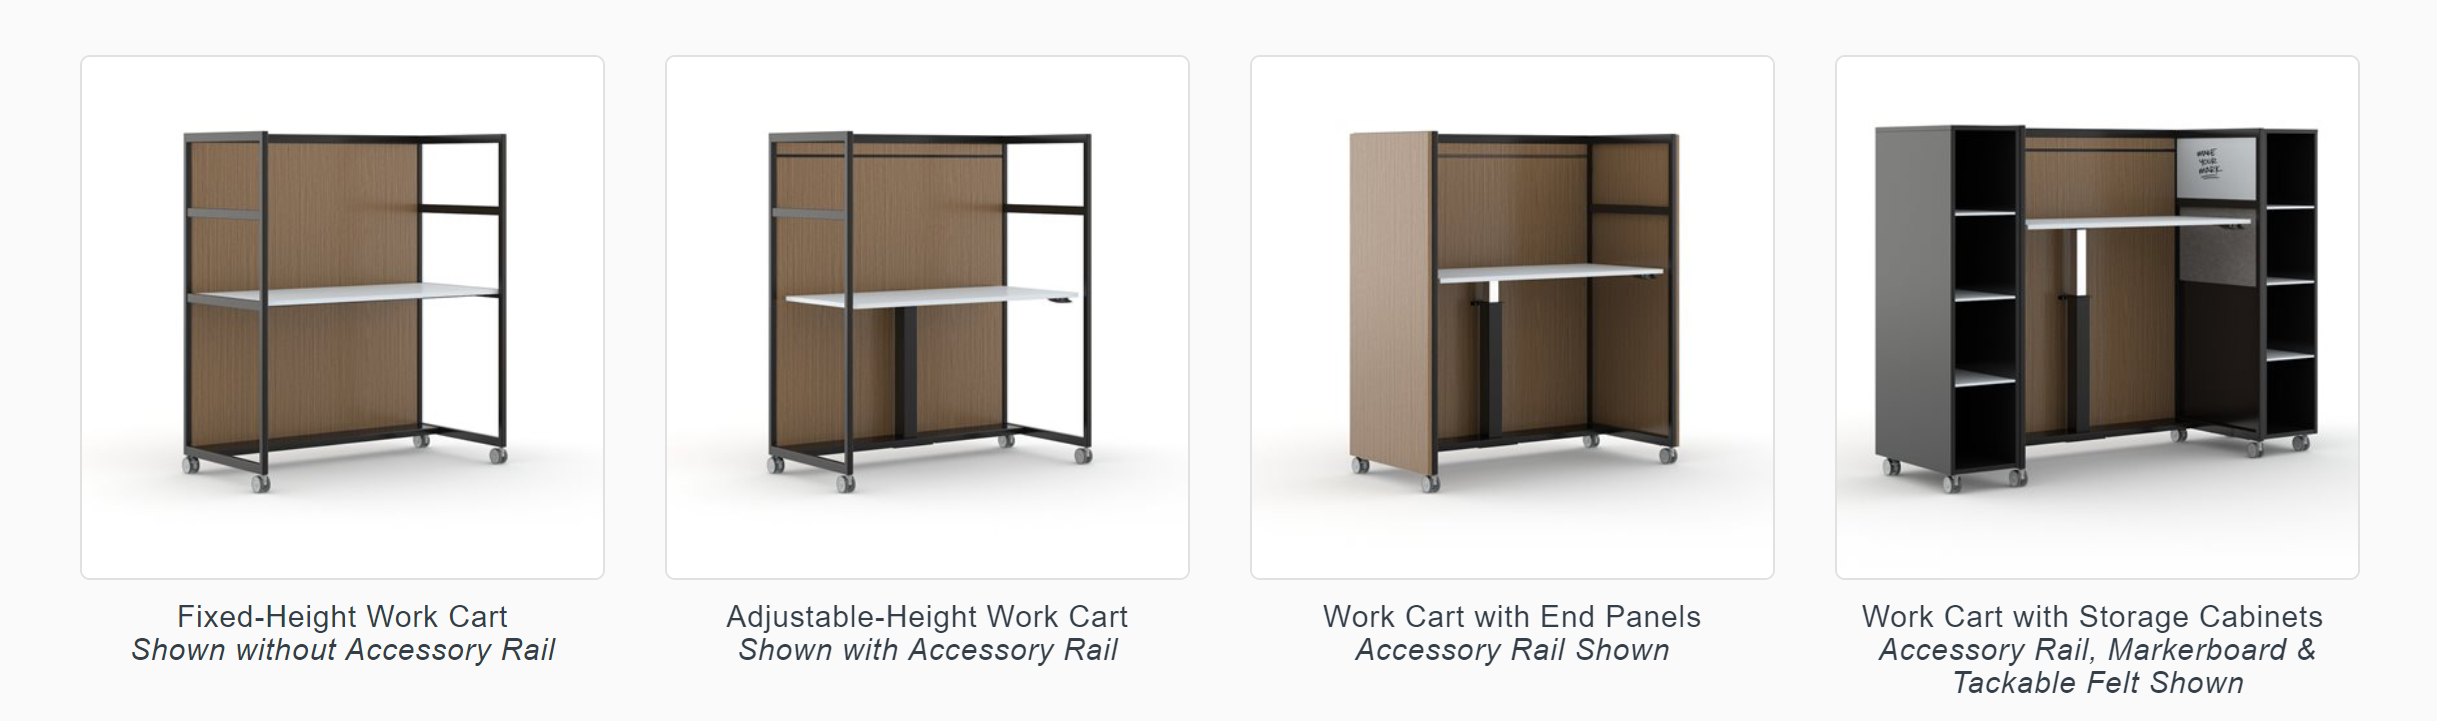 From a fixed-height surface to fully loaded, the KORE Work Cart offers a wide range of adaptability.